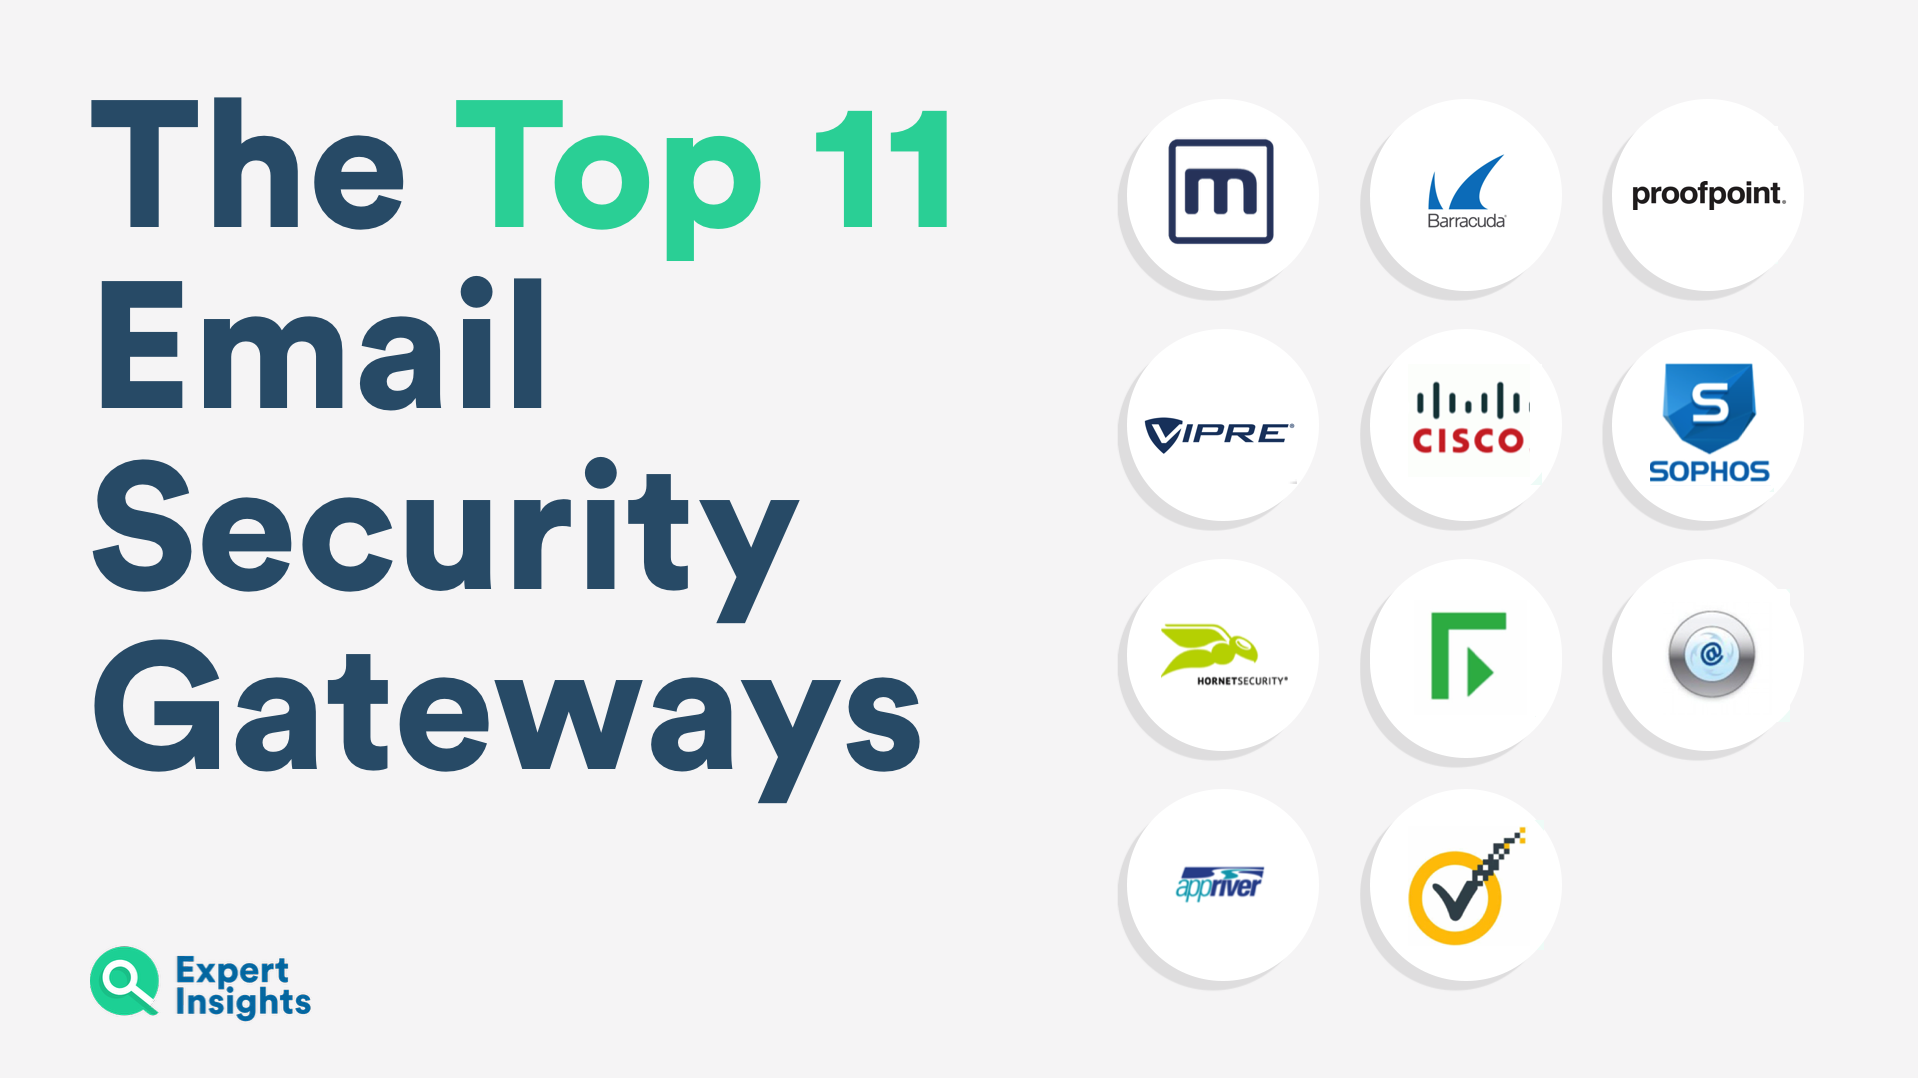 The Top 11 Email Security Gateways | Expert Insights